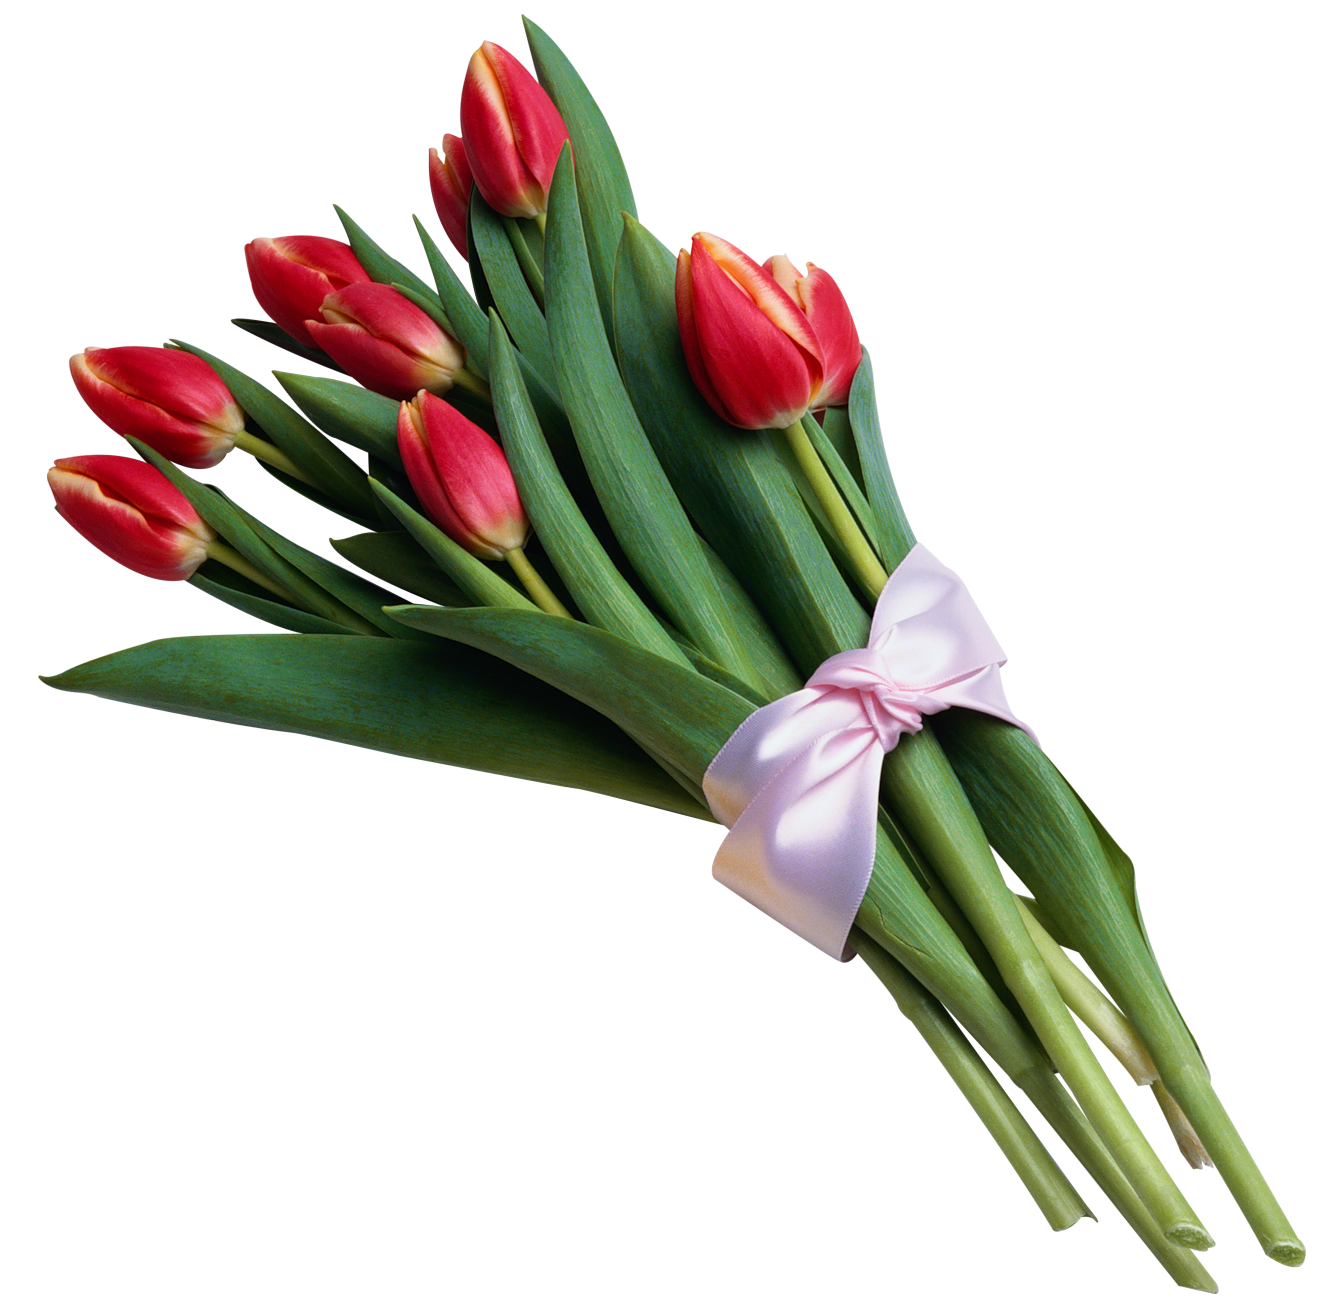 Tulip bouquet png. Of red tulips transparent